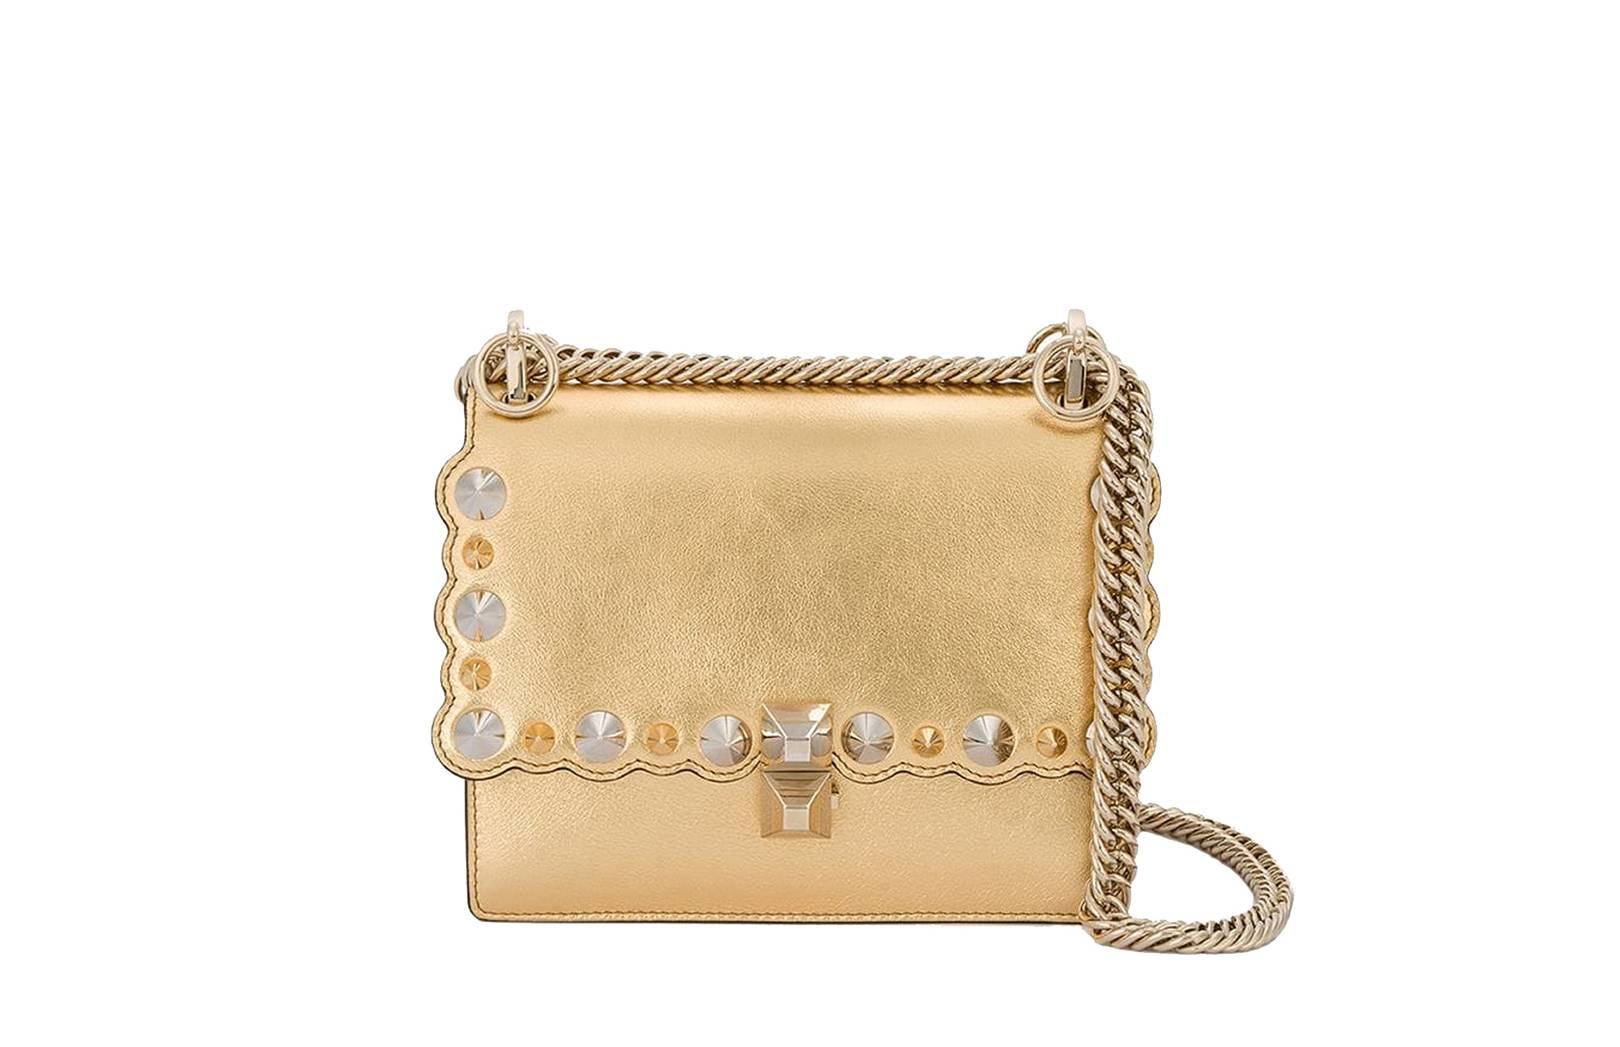 271deb12d281 The 12 Best Gold Bags To Buy Now